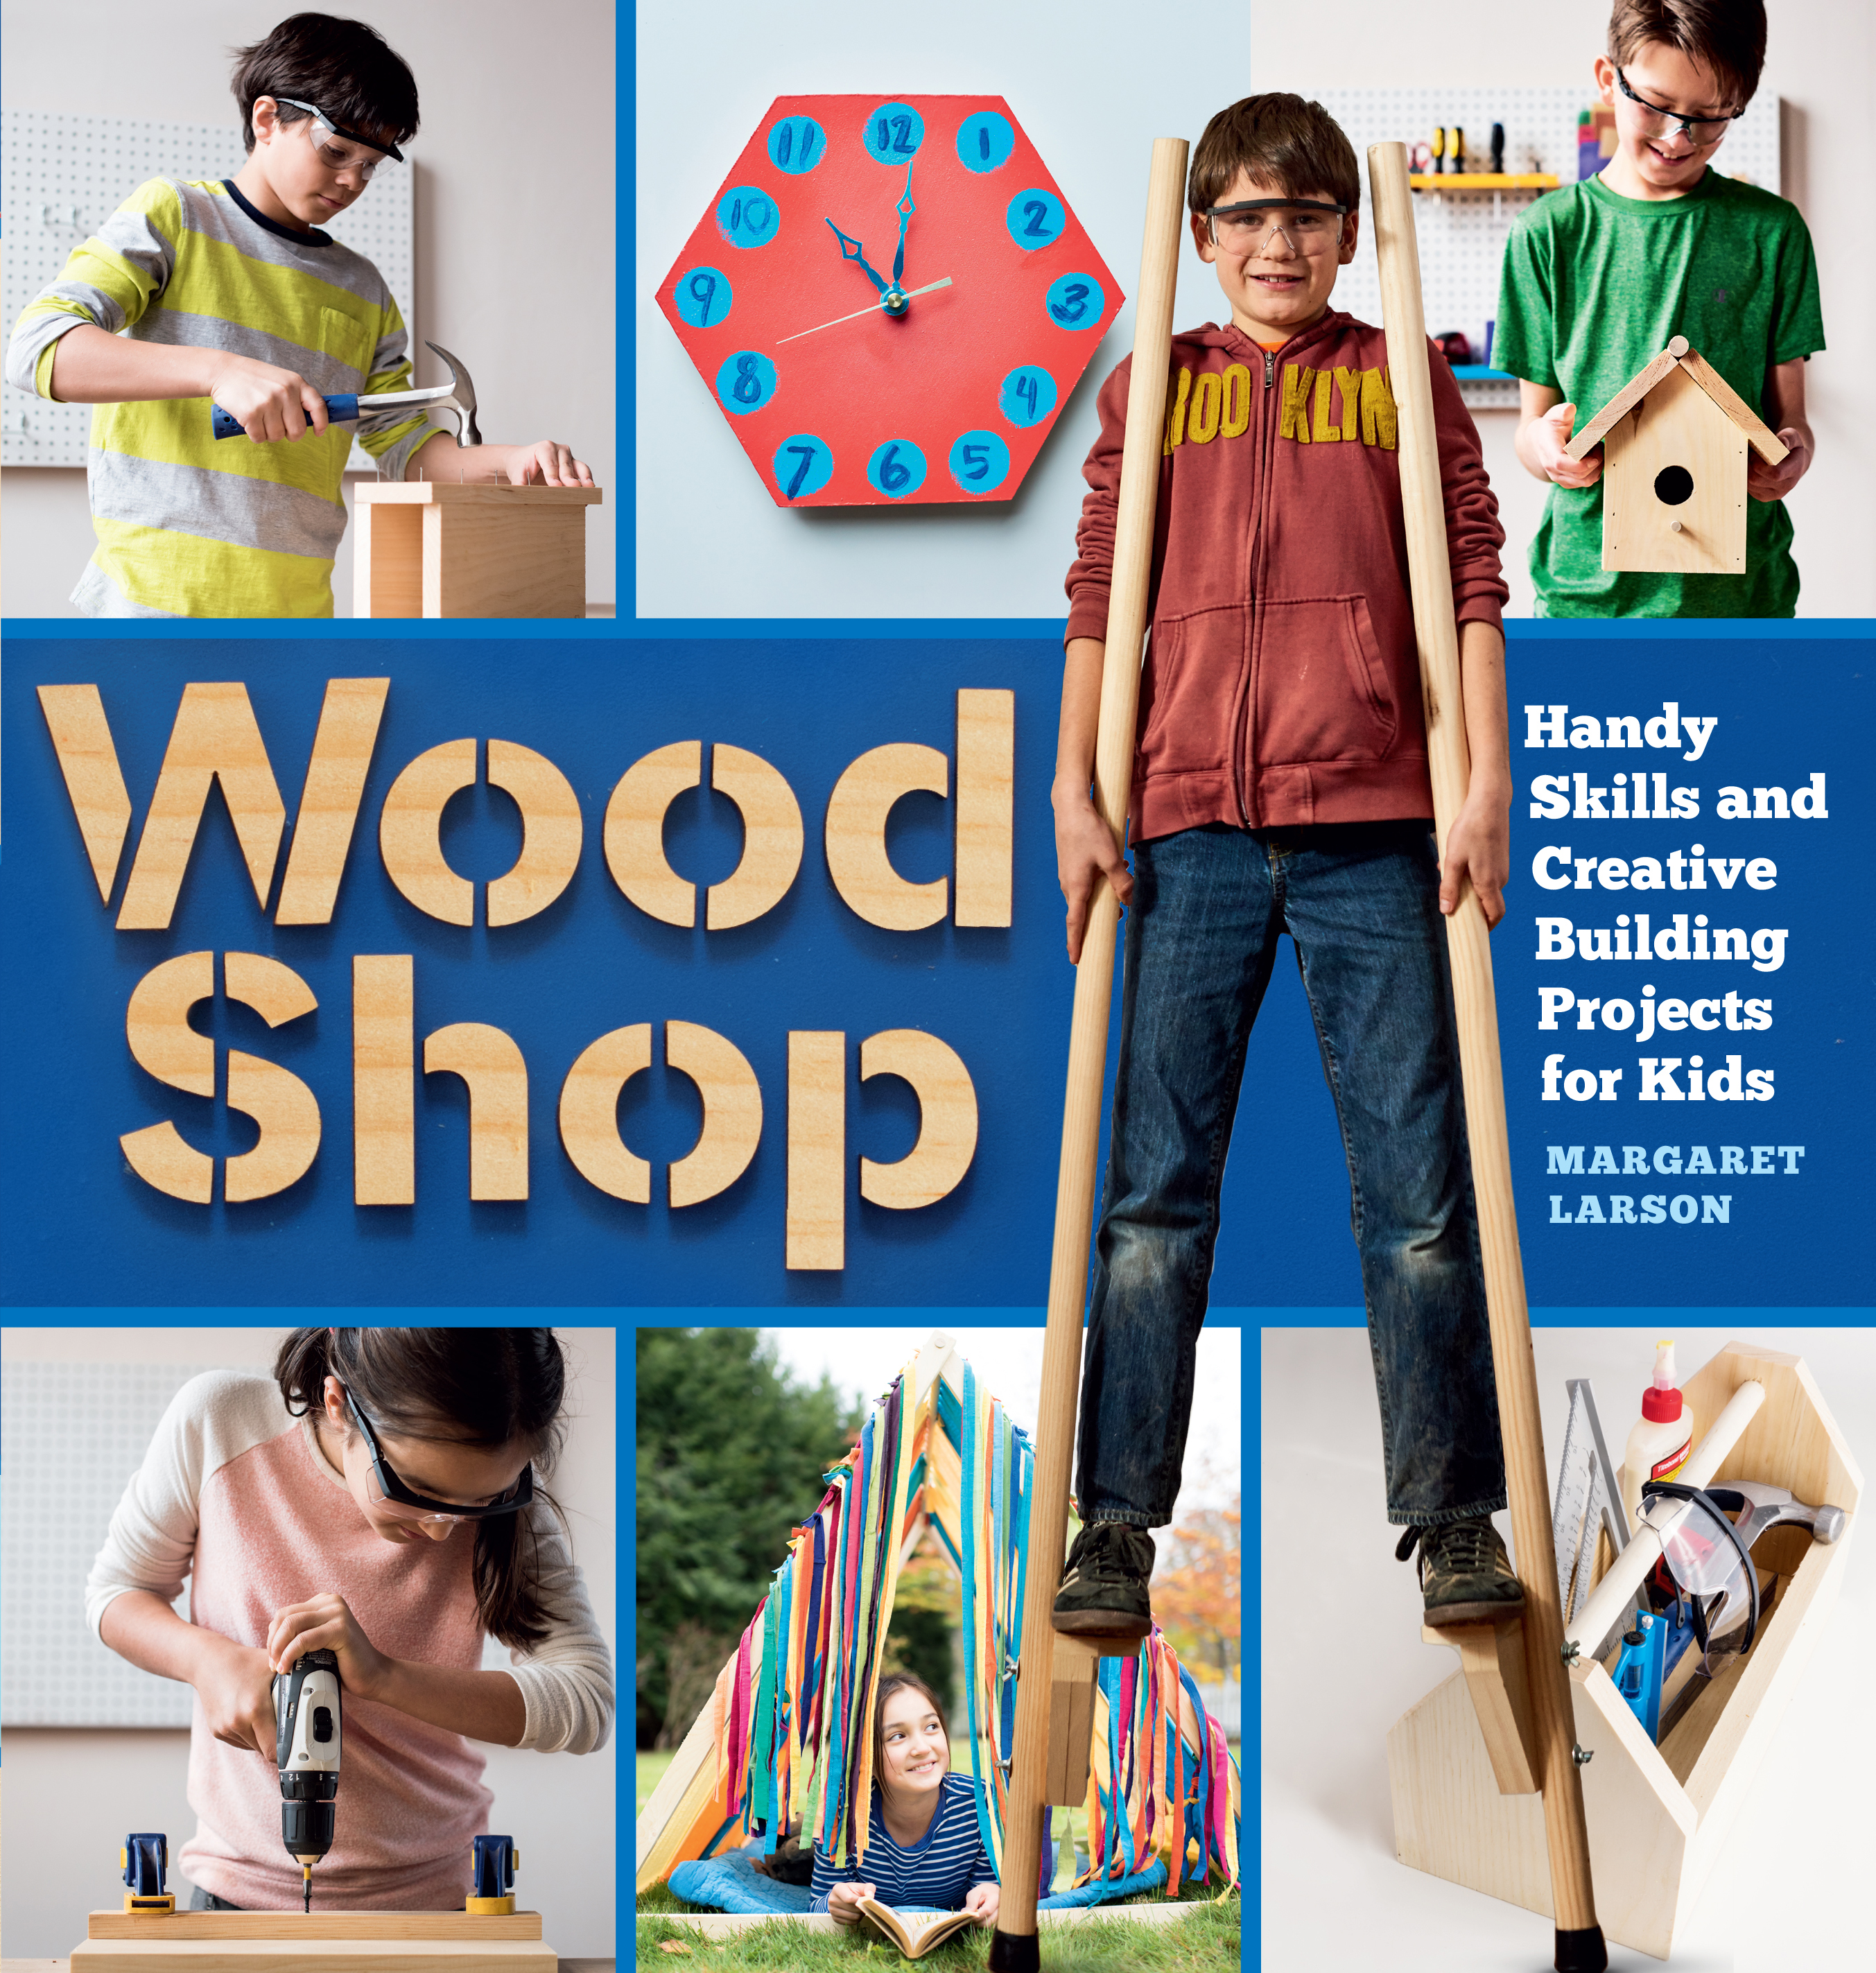 Wood Shop Handy Skills and Creative Building Projects for Kids - Margaret Larson